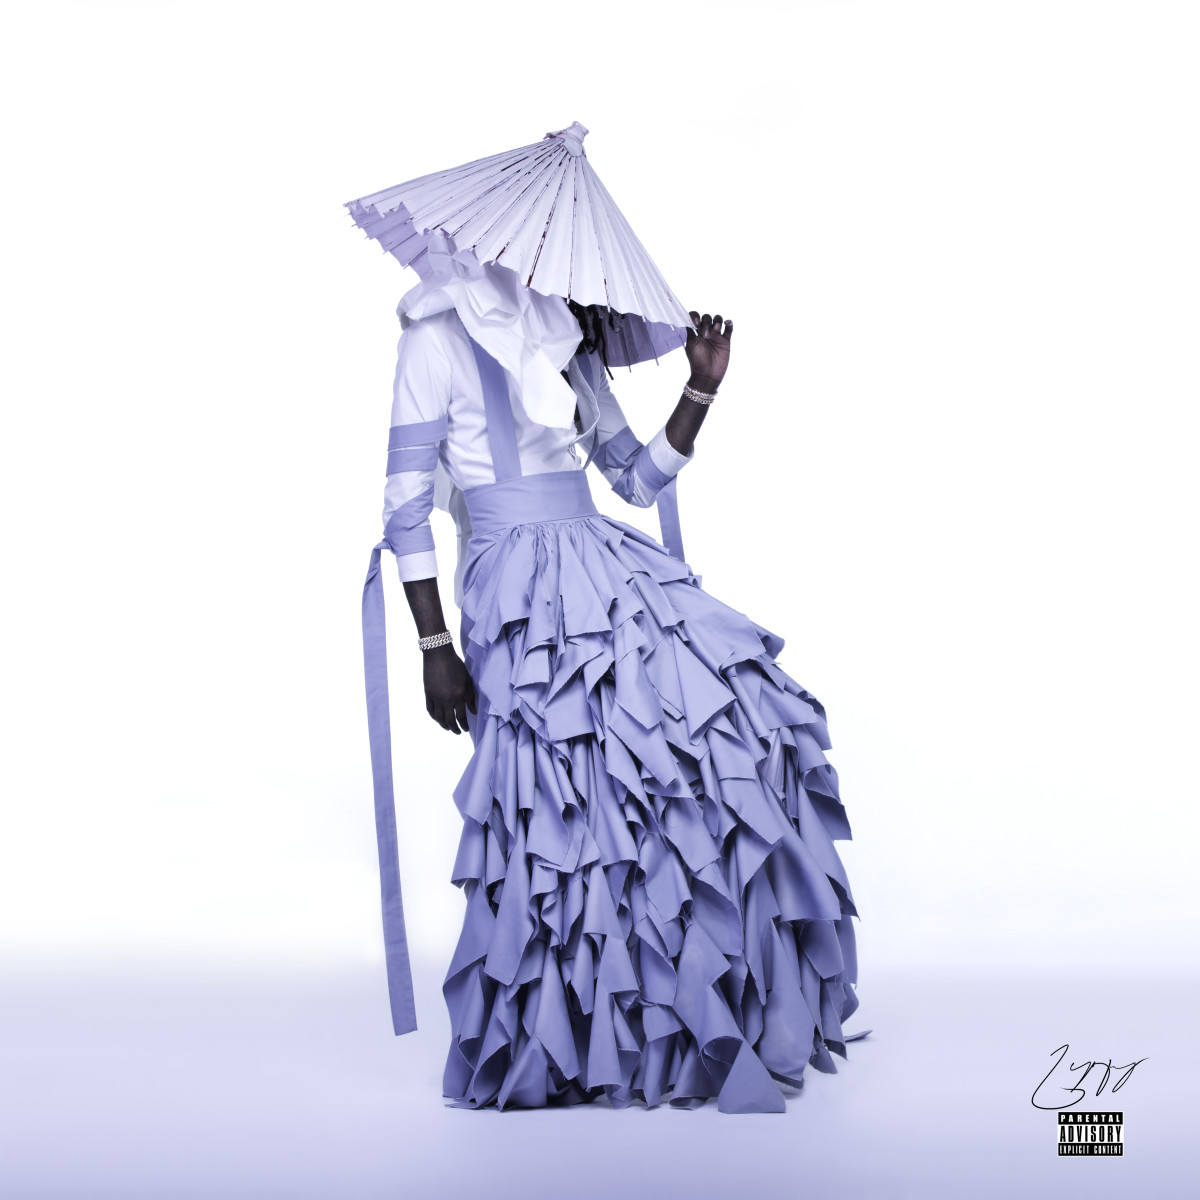 Official-Jeffery-Cover-Front-.jpg